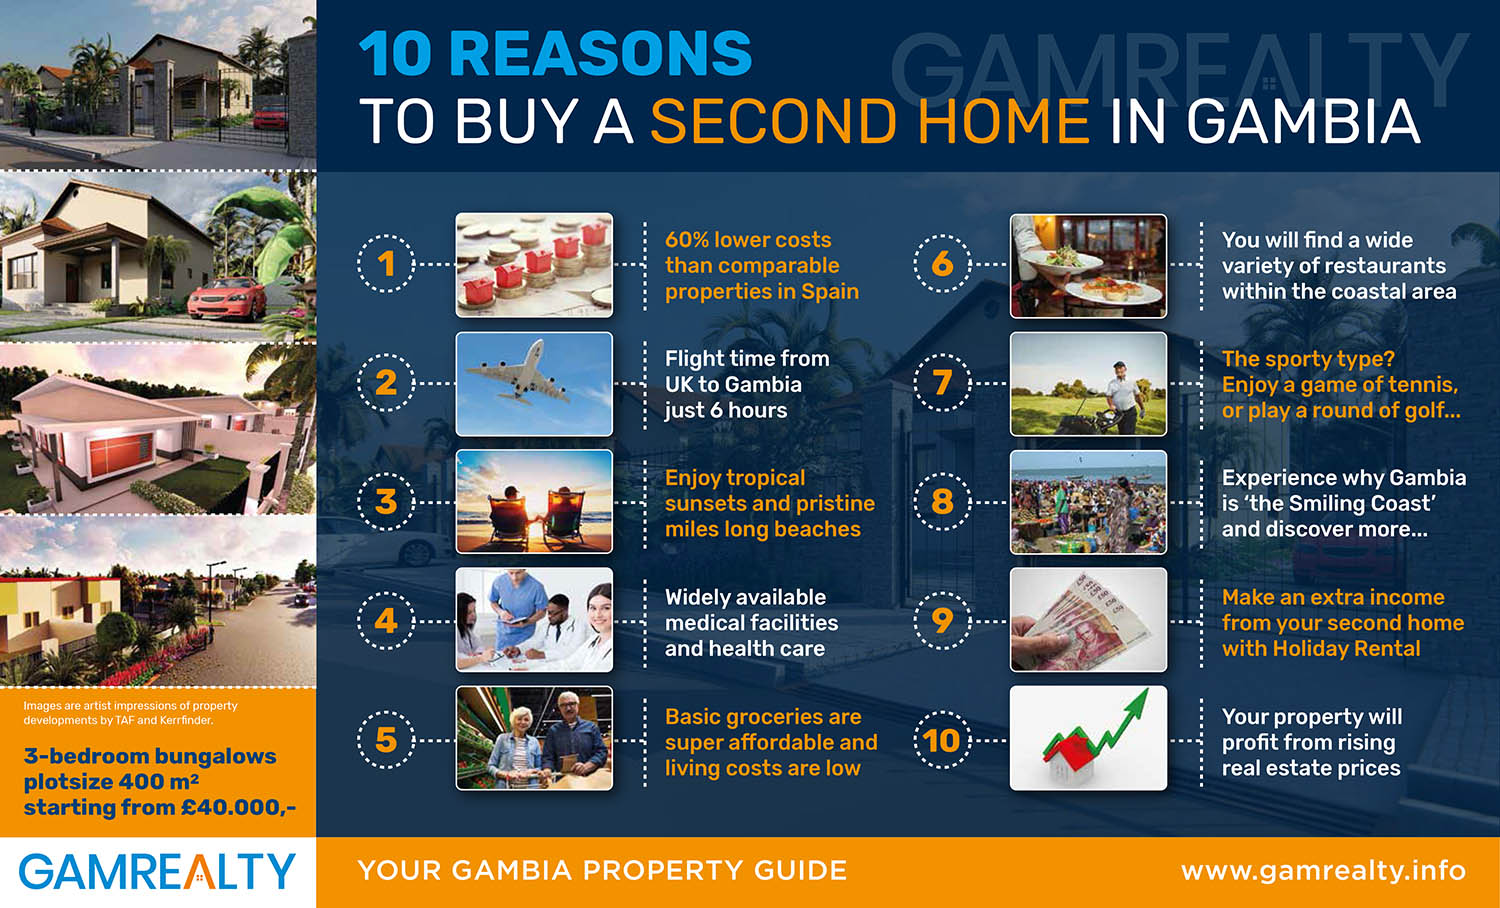 10 Reasons for buying second home in Gambia